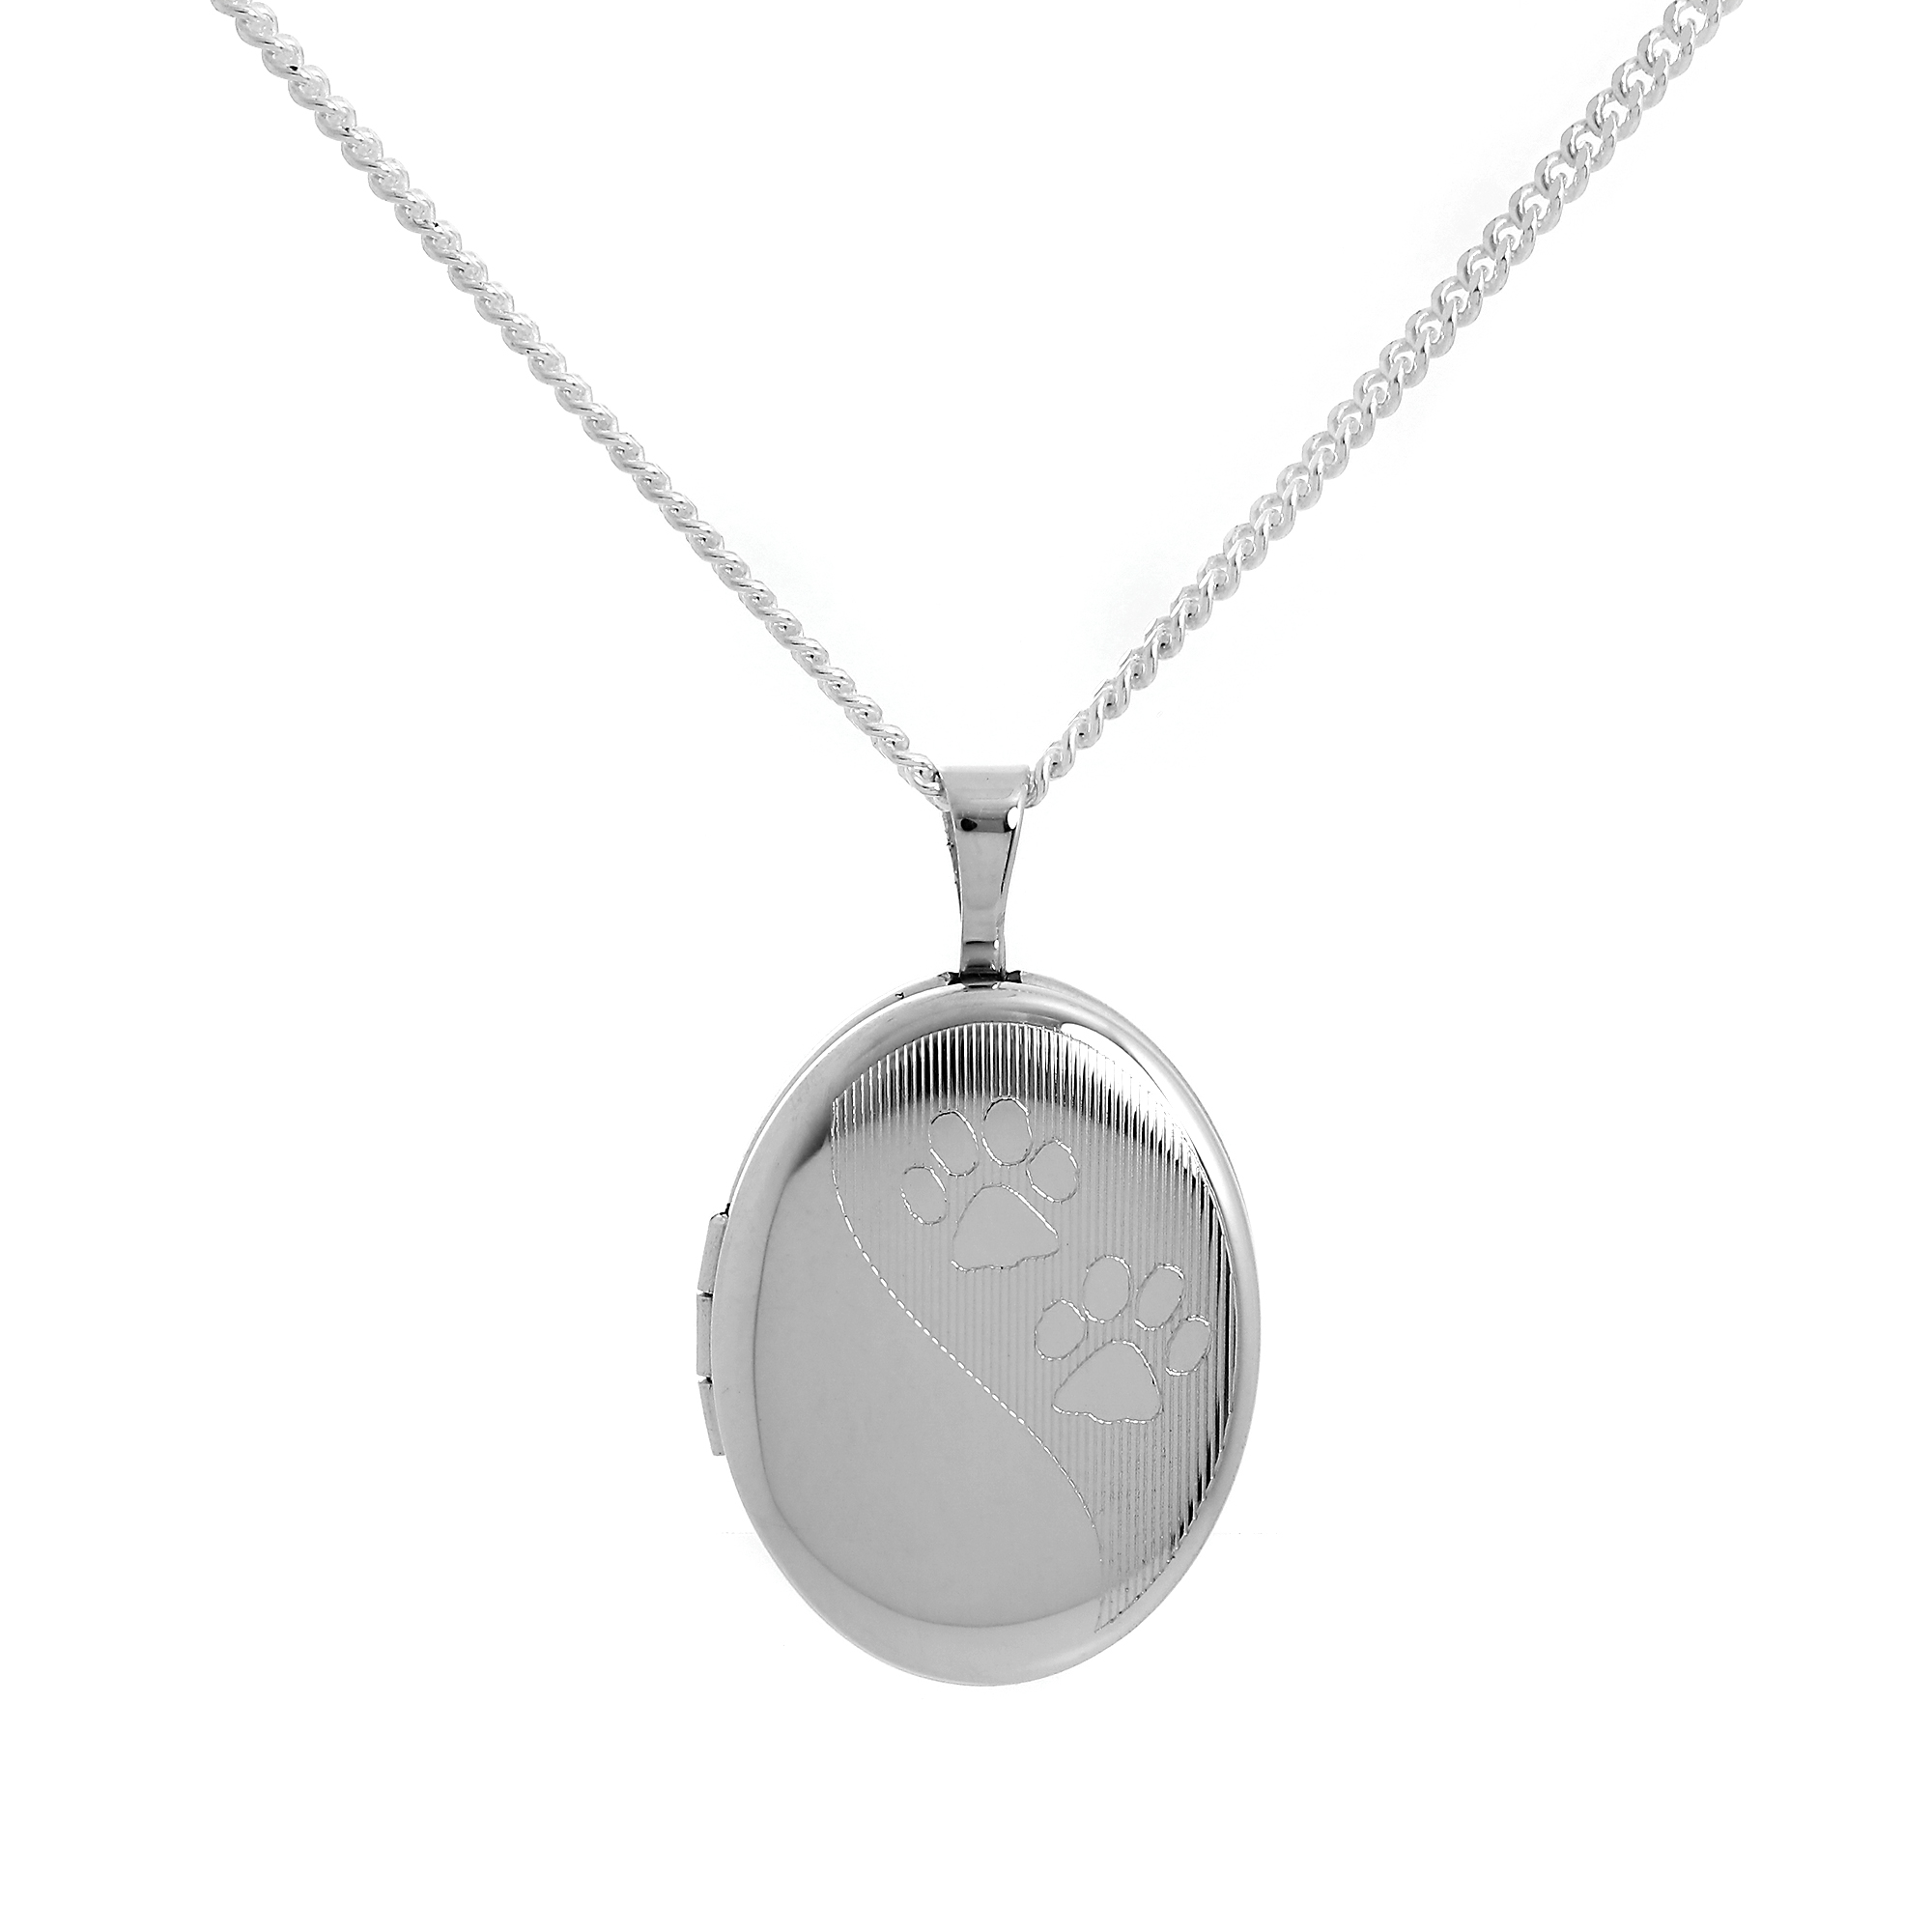 An image of Sterling Silver Animal Paw Print Oval Locket on Chain